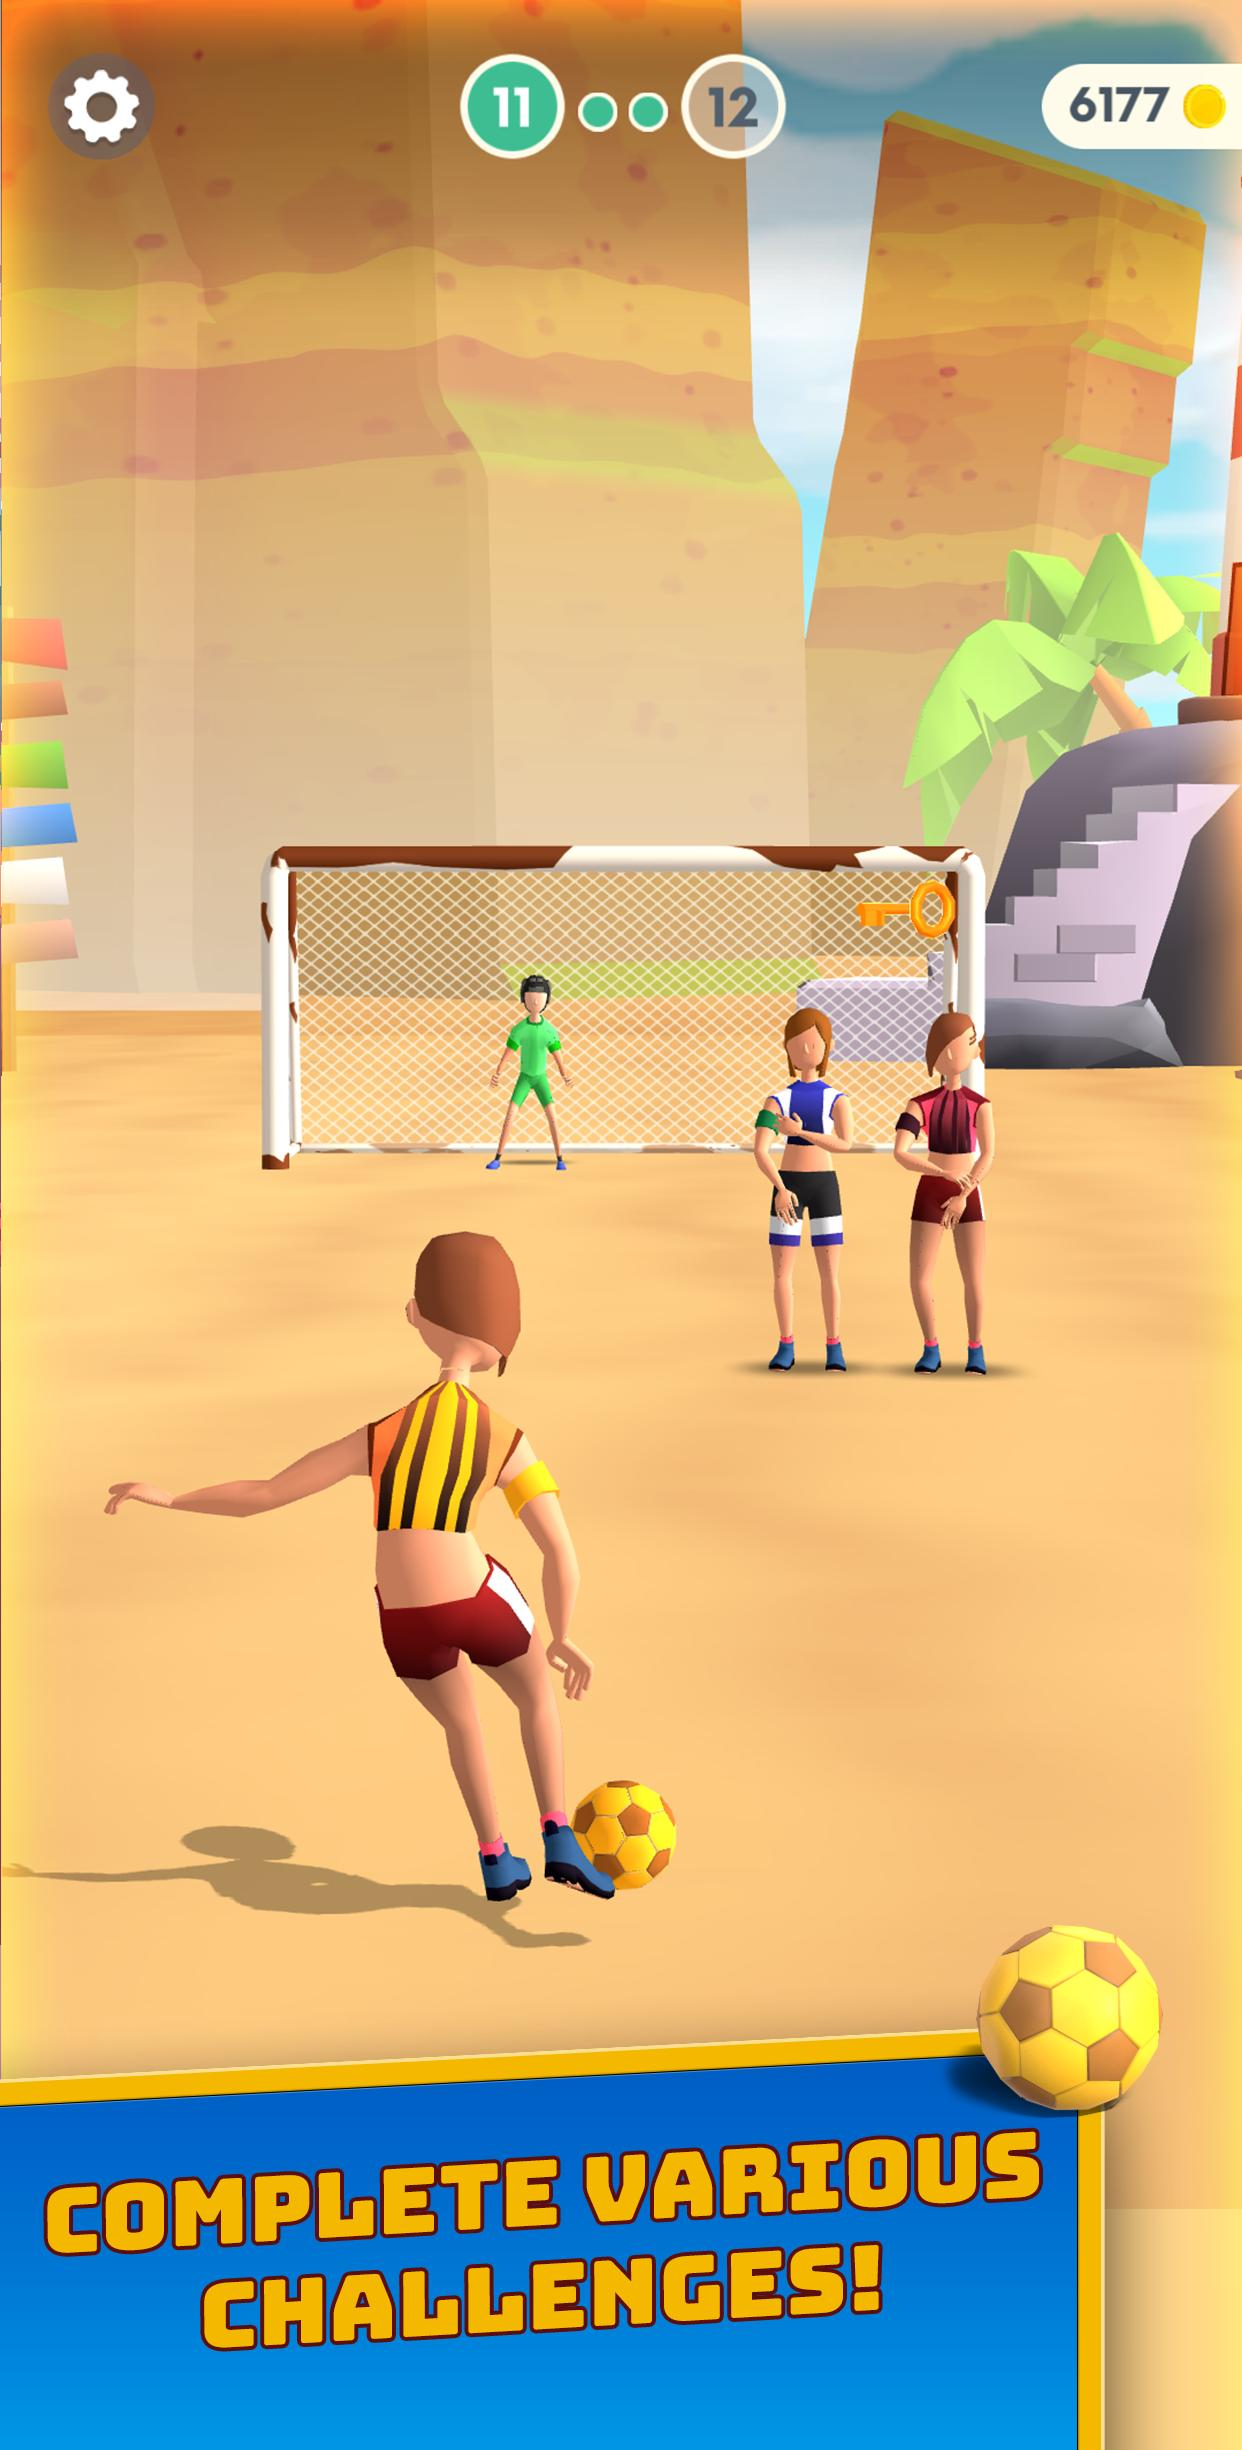 Flick goal - Honest Mobile Game Review